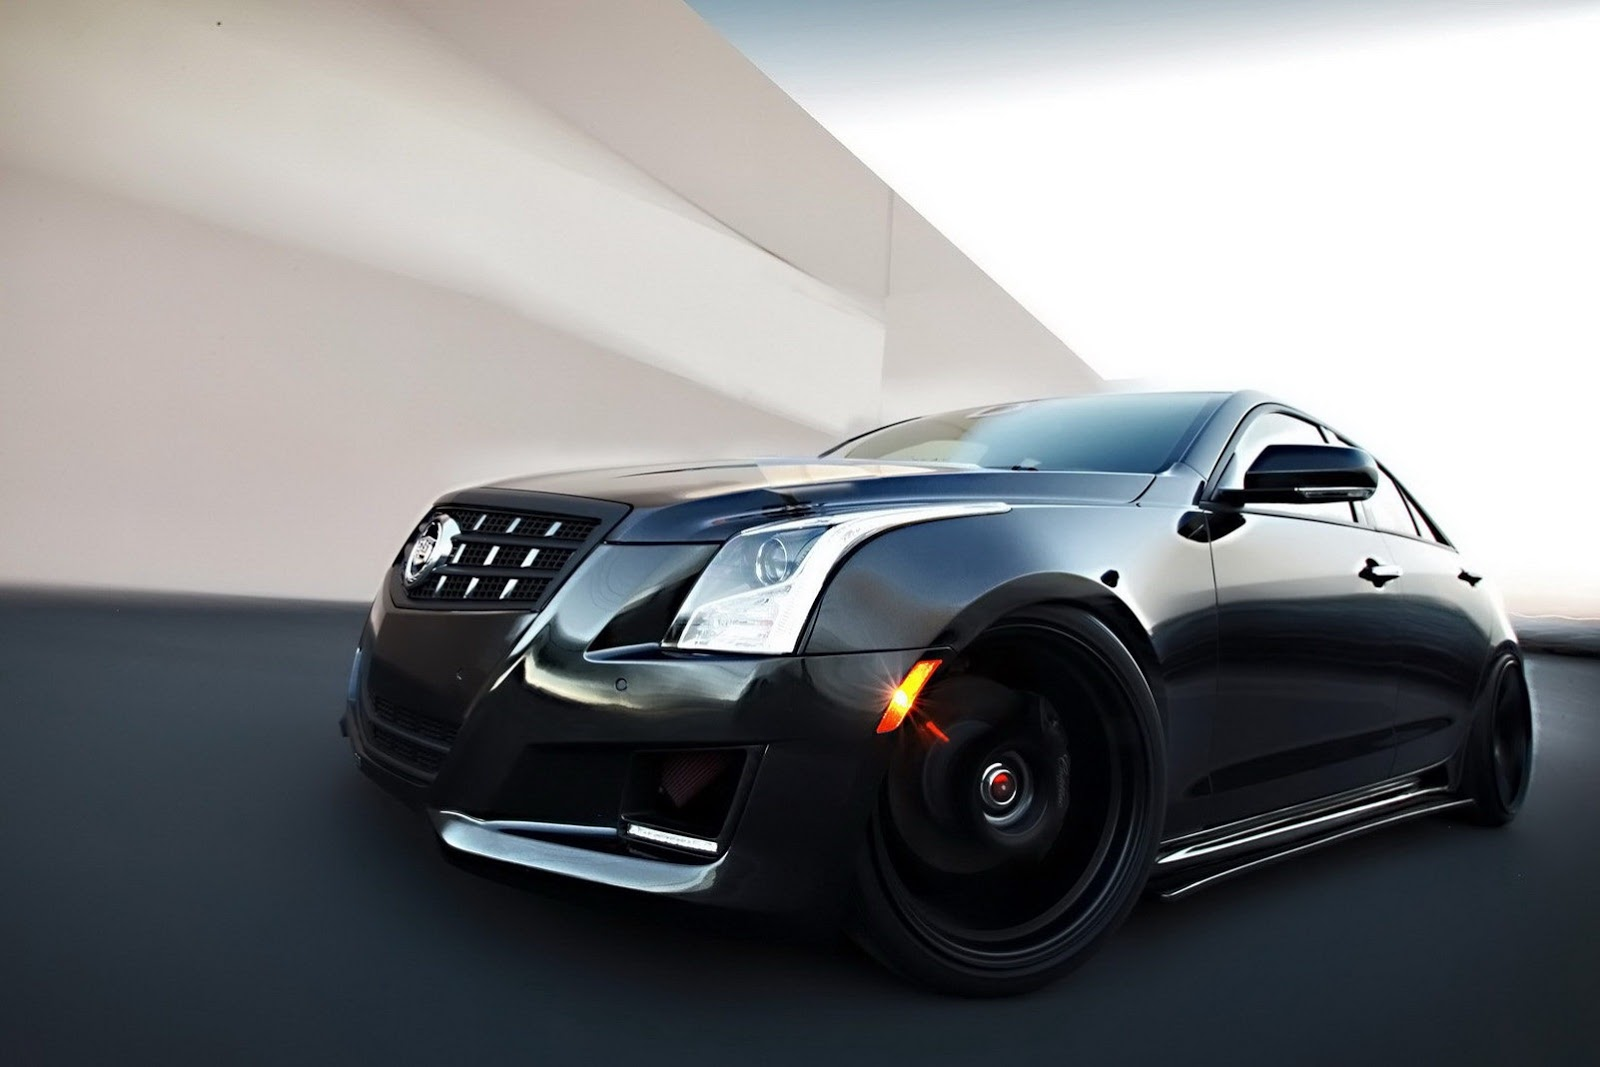 automobiles style ats nice spoilers com spoiler quality aliexpress carbon lip fitment in trunk item cadillac wings on excellent motorcycles from fiber alibaba for